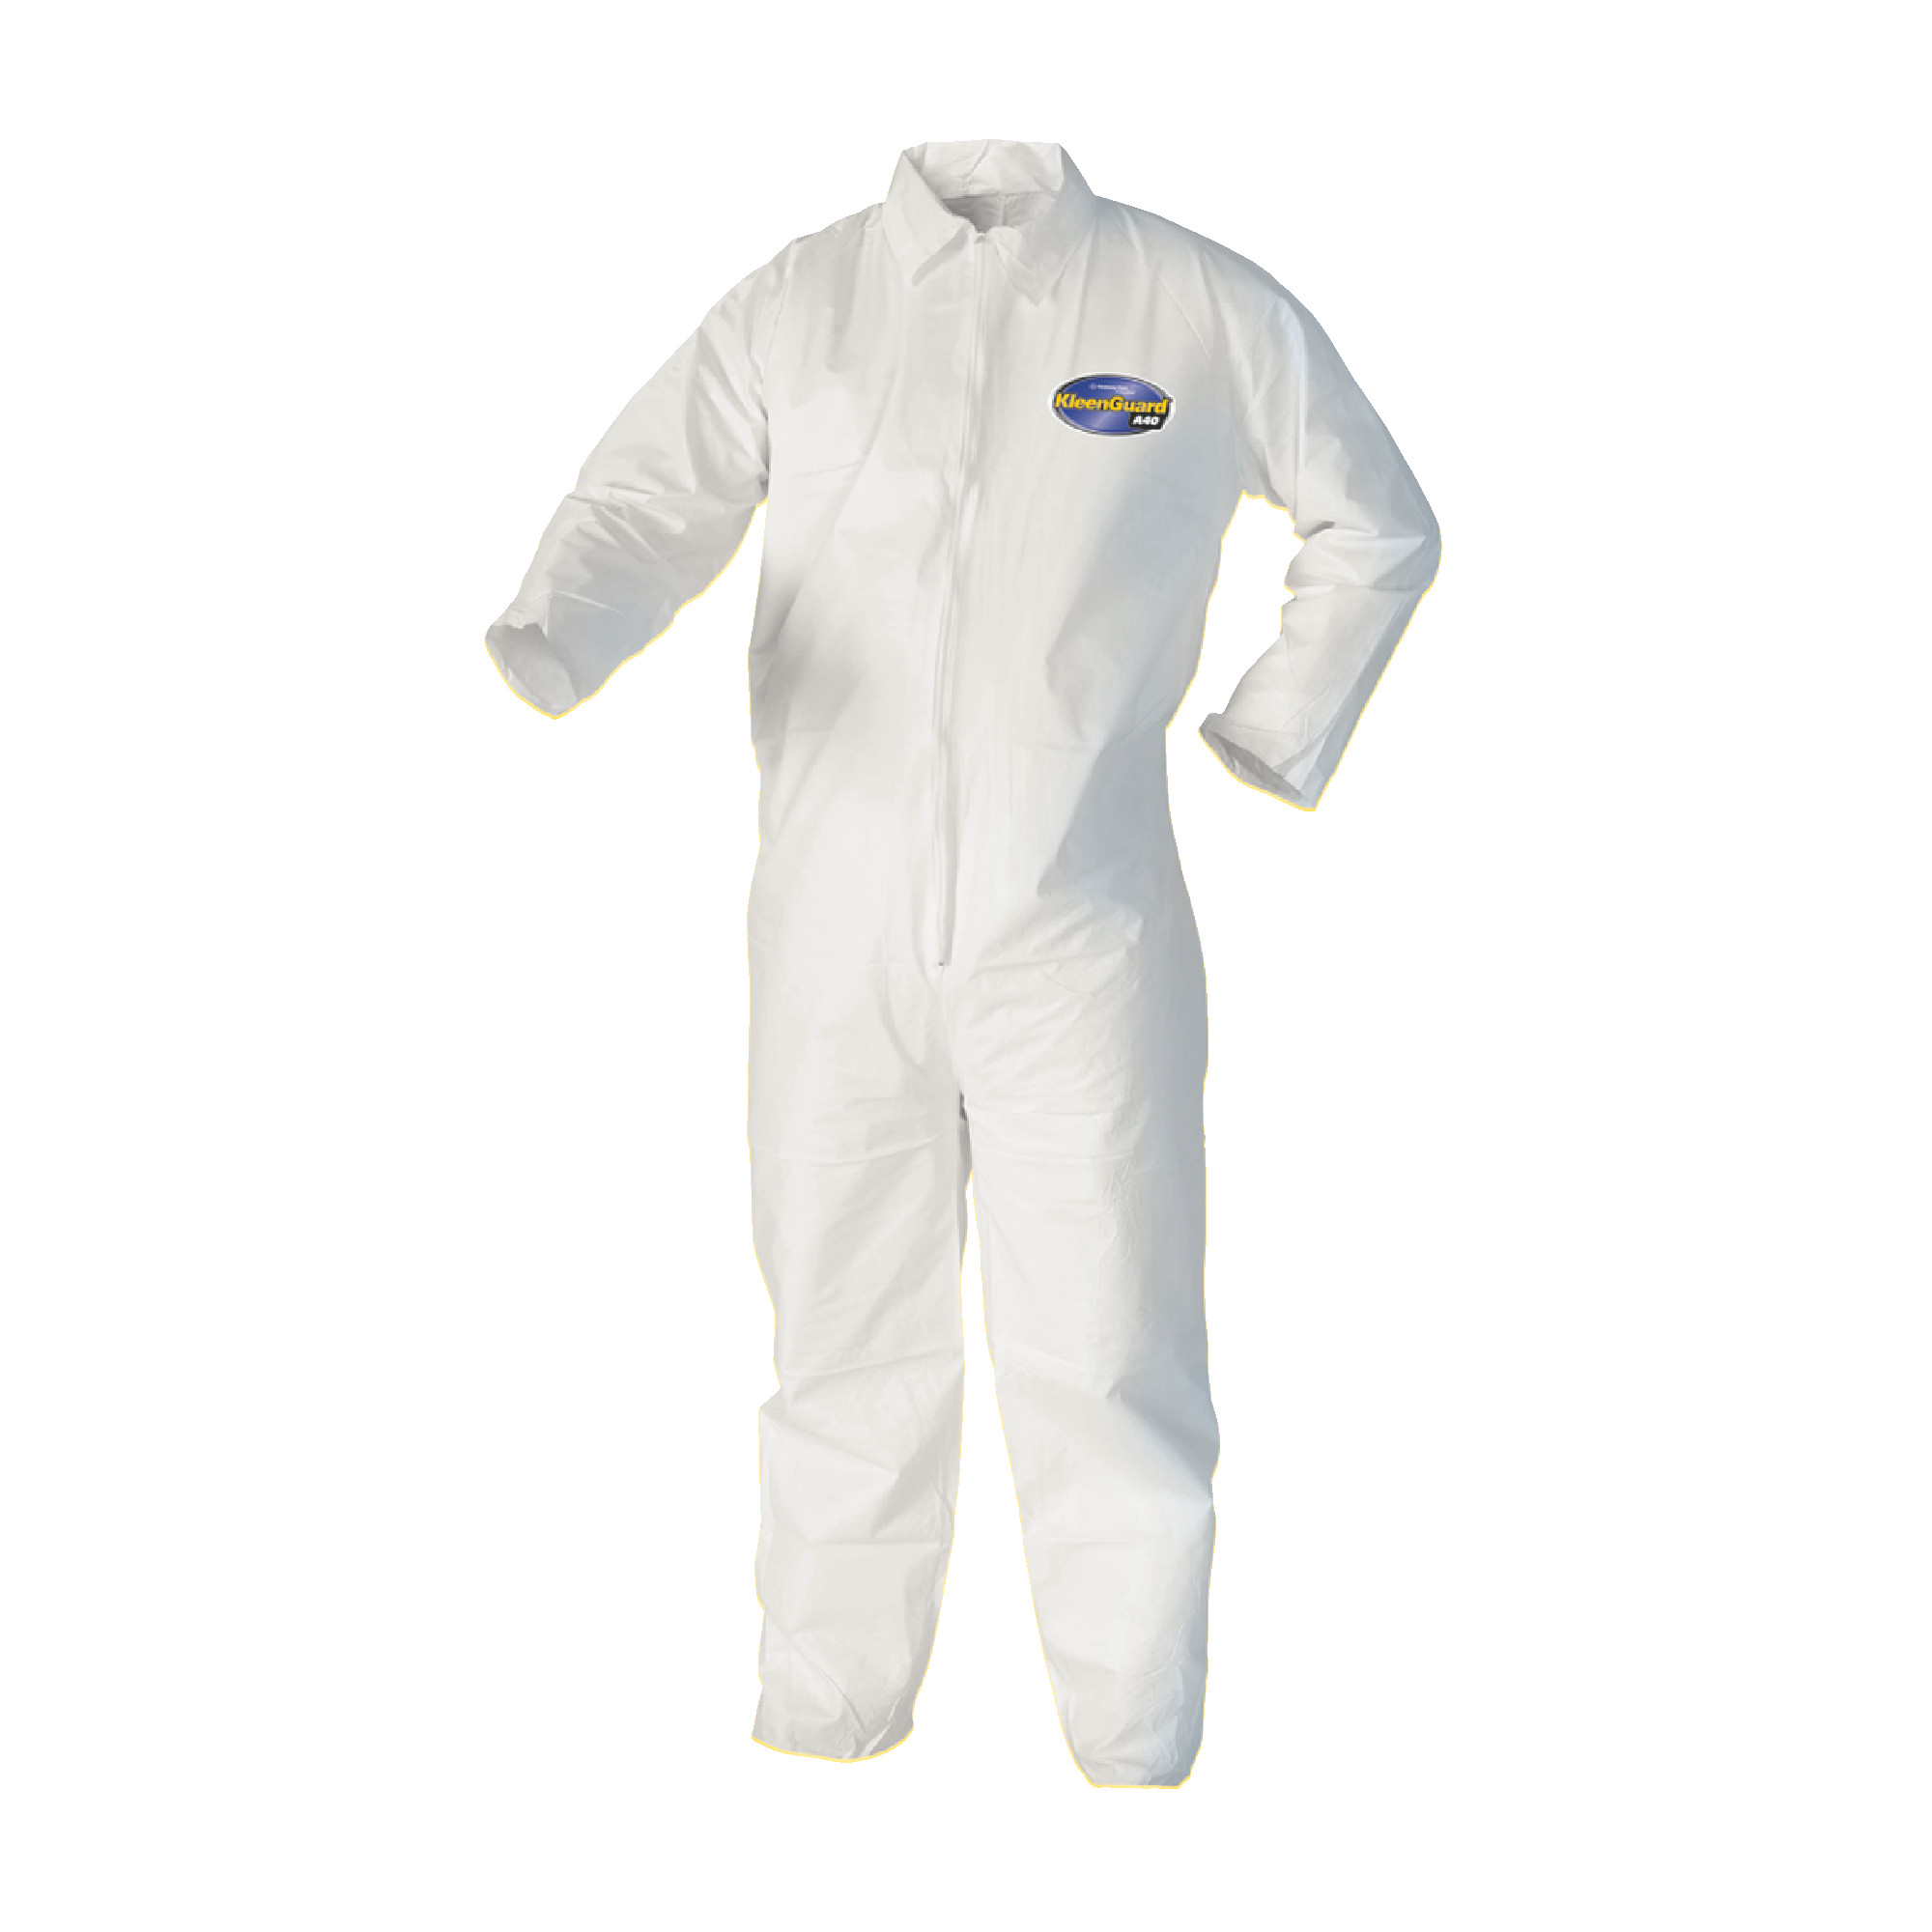 KleenGuard Disposable Coveralls